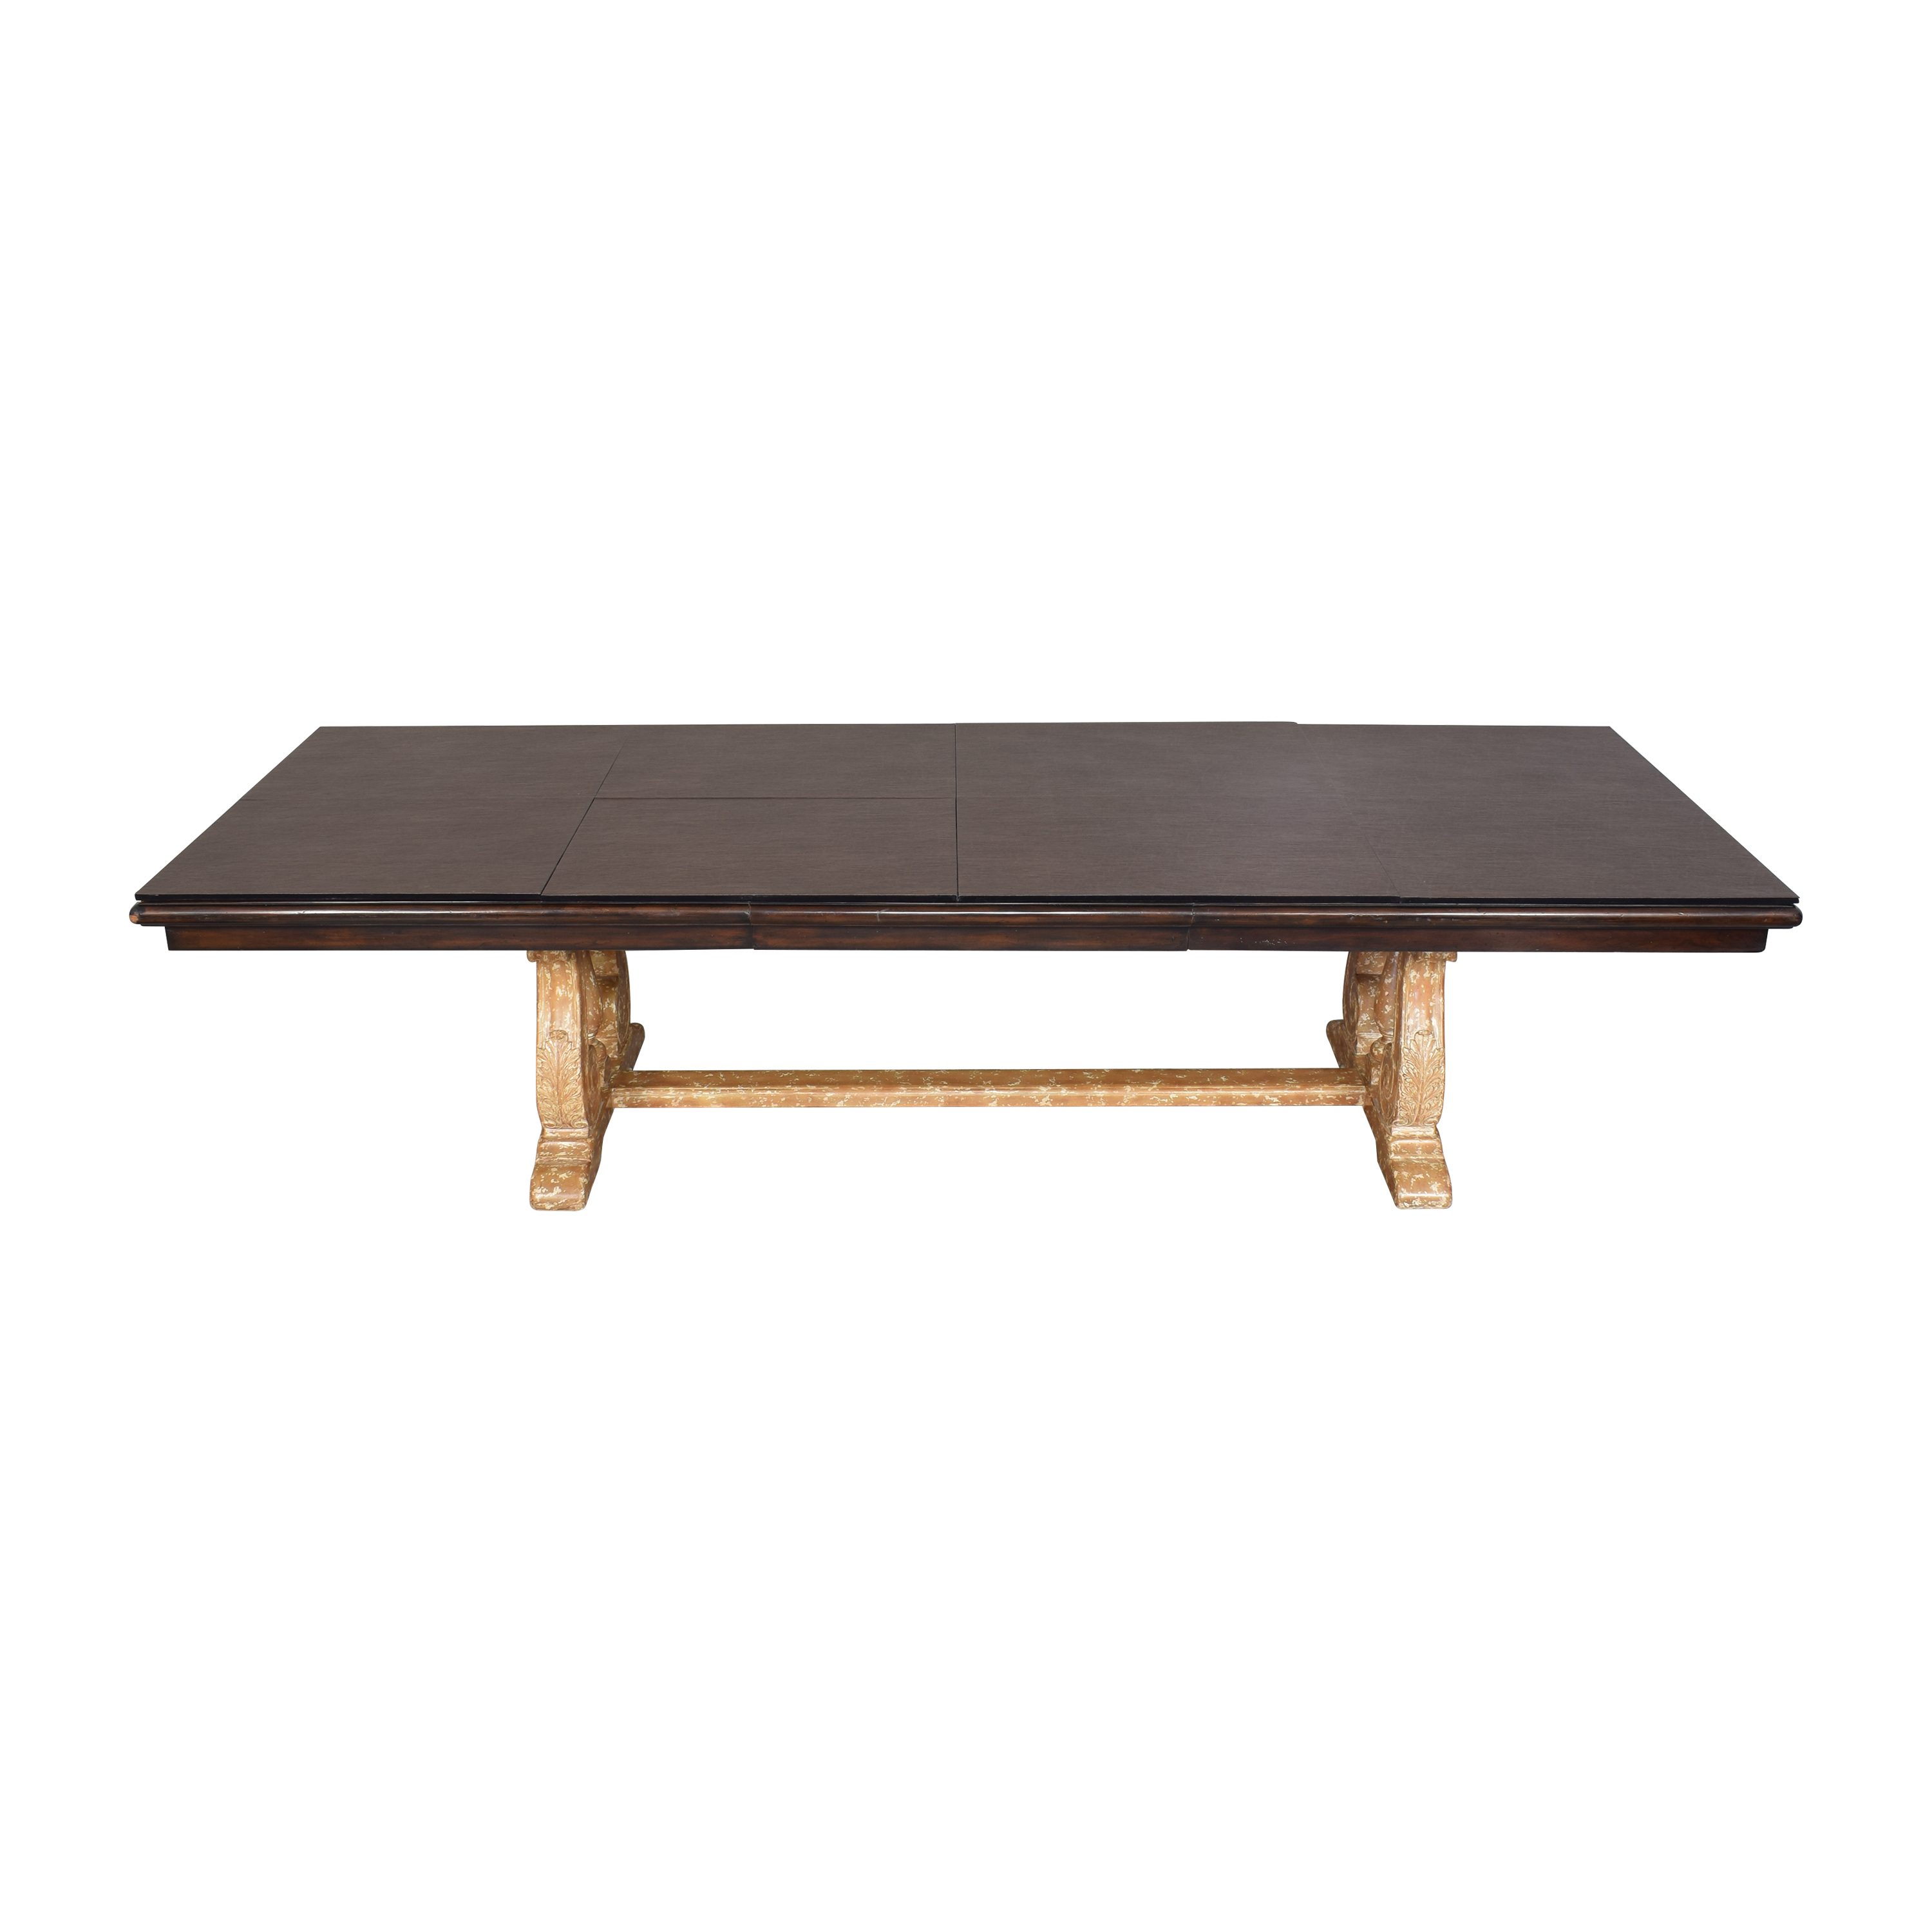 Theodore Alexander Theodore Alexander Madrid Extension Dining Table discount